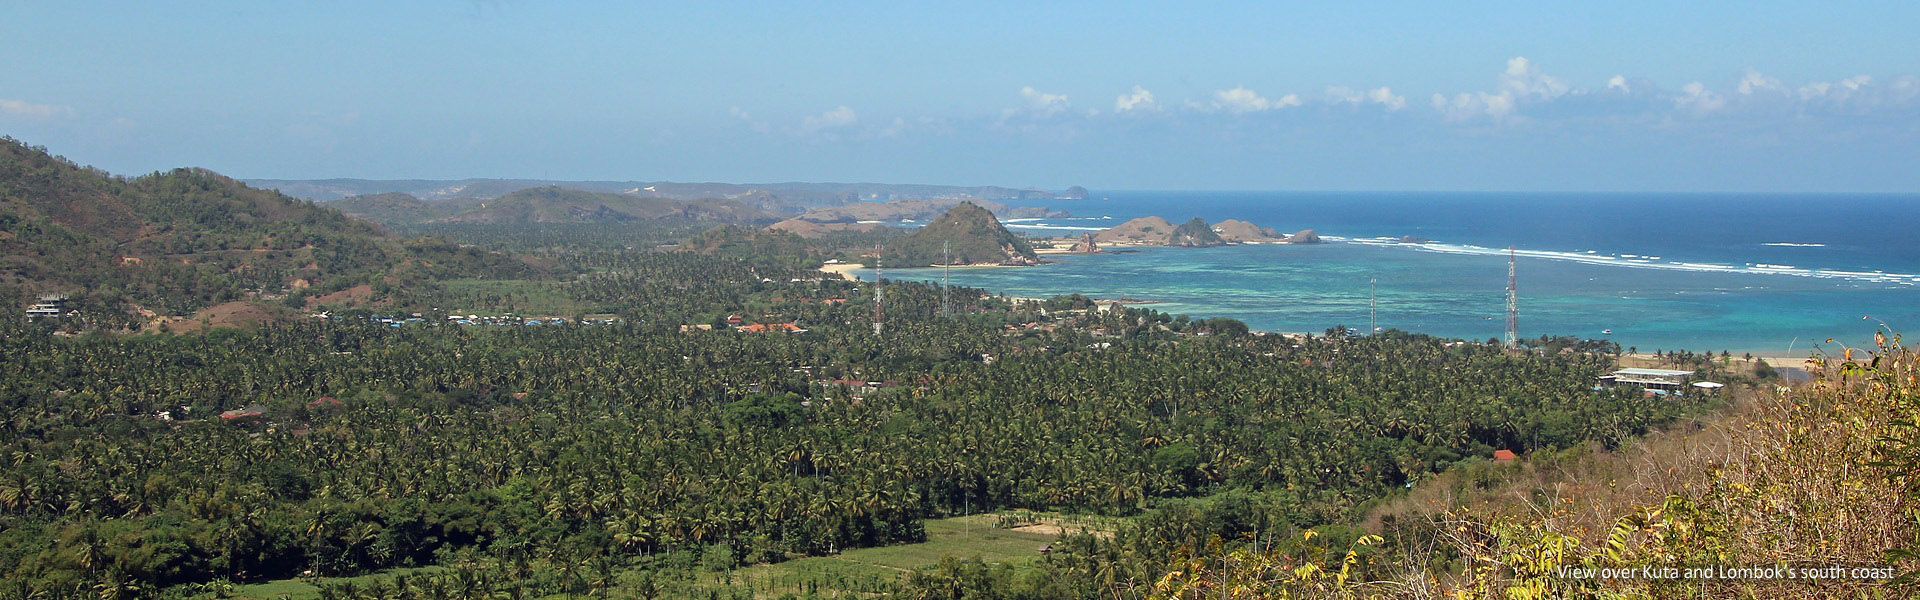 View of Kuta and Lombok's southern coastline